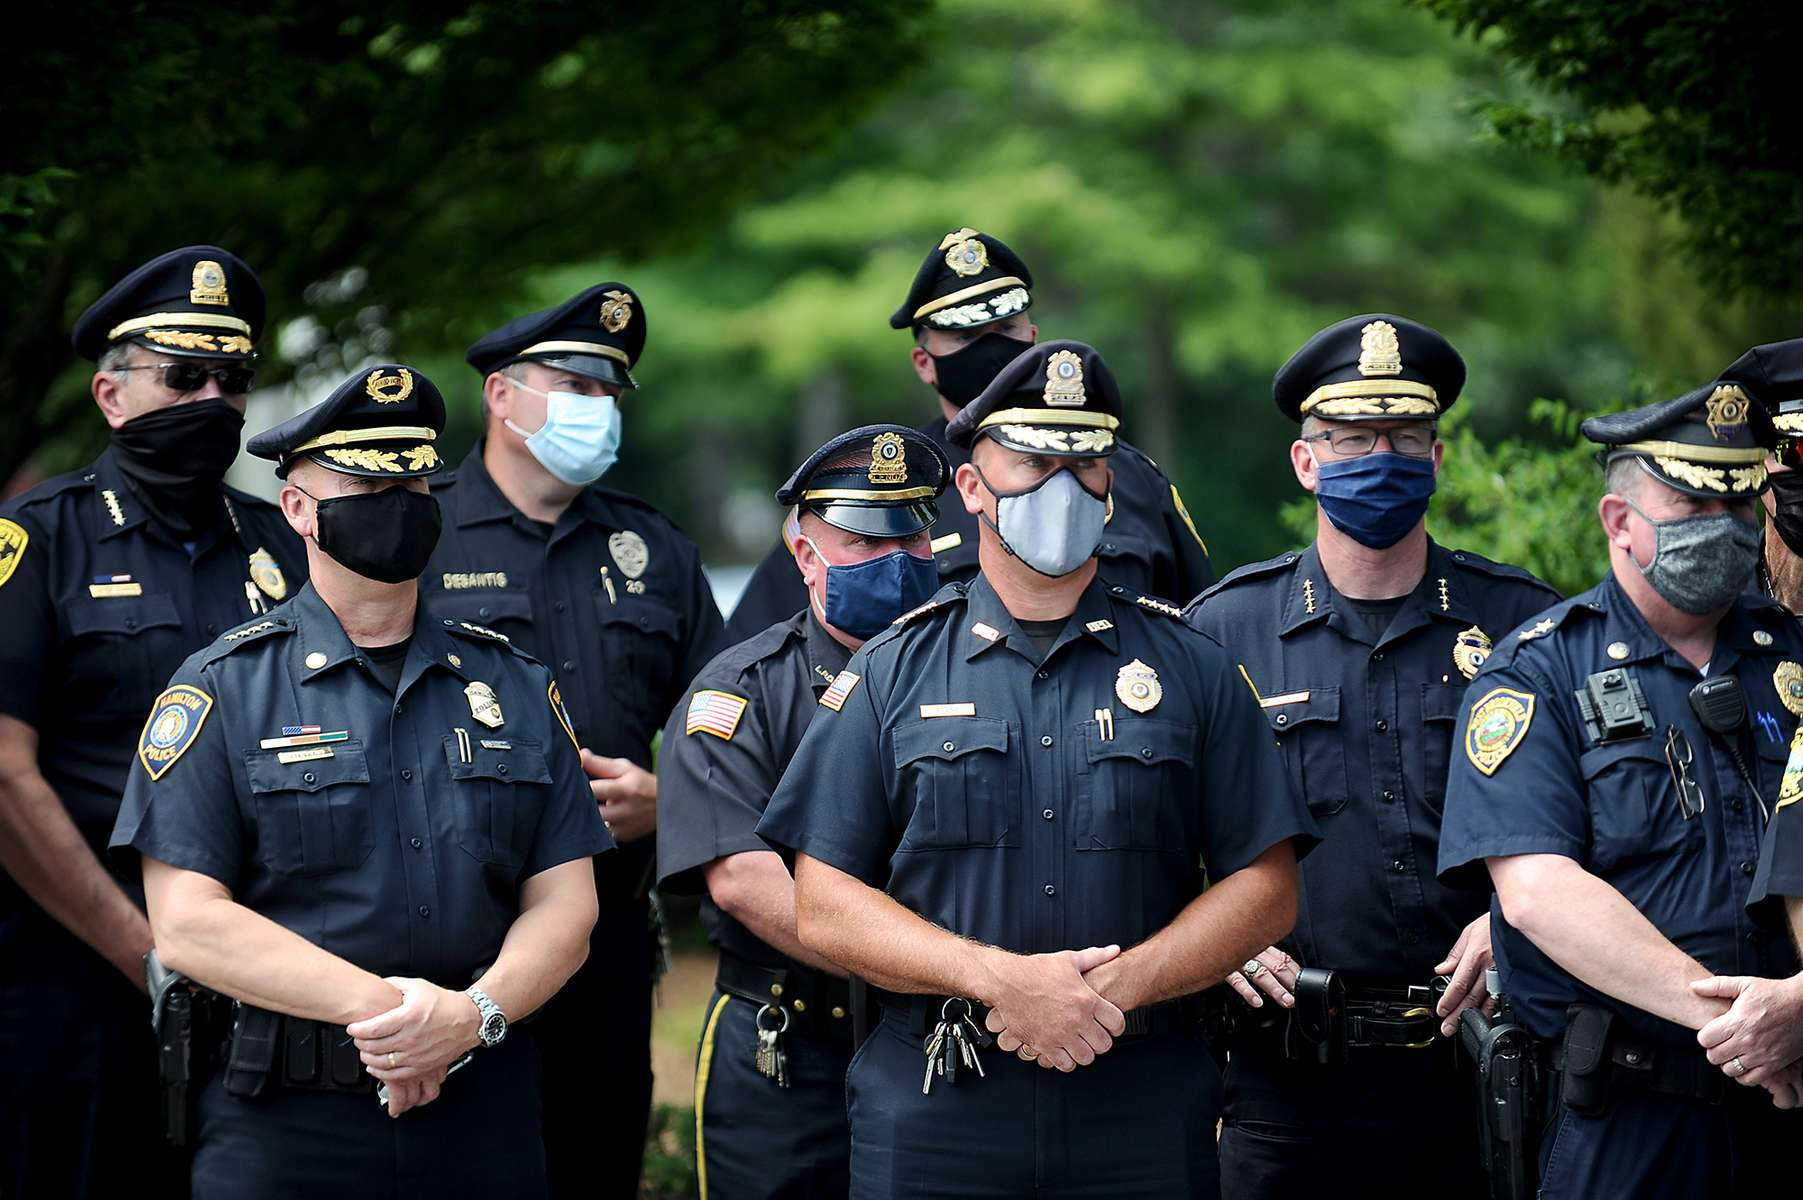 7/21/20-- FRAMINGHAM-- Dozens of police chiefs attended a rally addressing proposed state police reform bills.  The rally was held at an otherwise empty AMC Movie theatre parking lot Tuesday morning. [Daily News and Wicked Local Staff Photo/Art Illman]